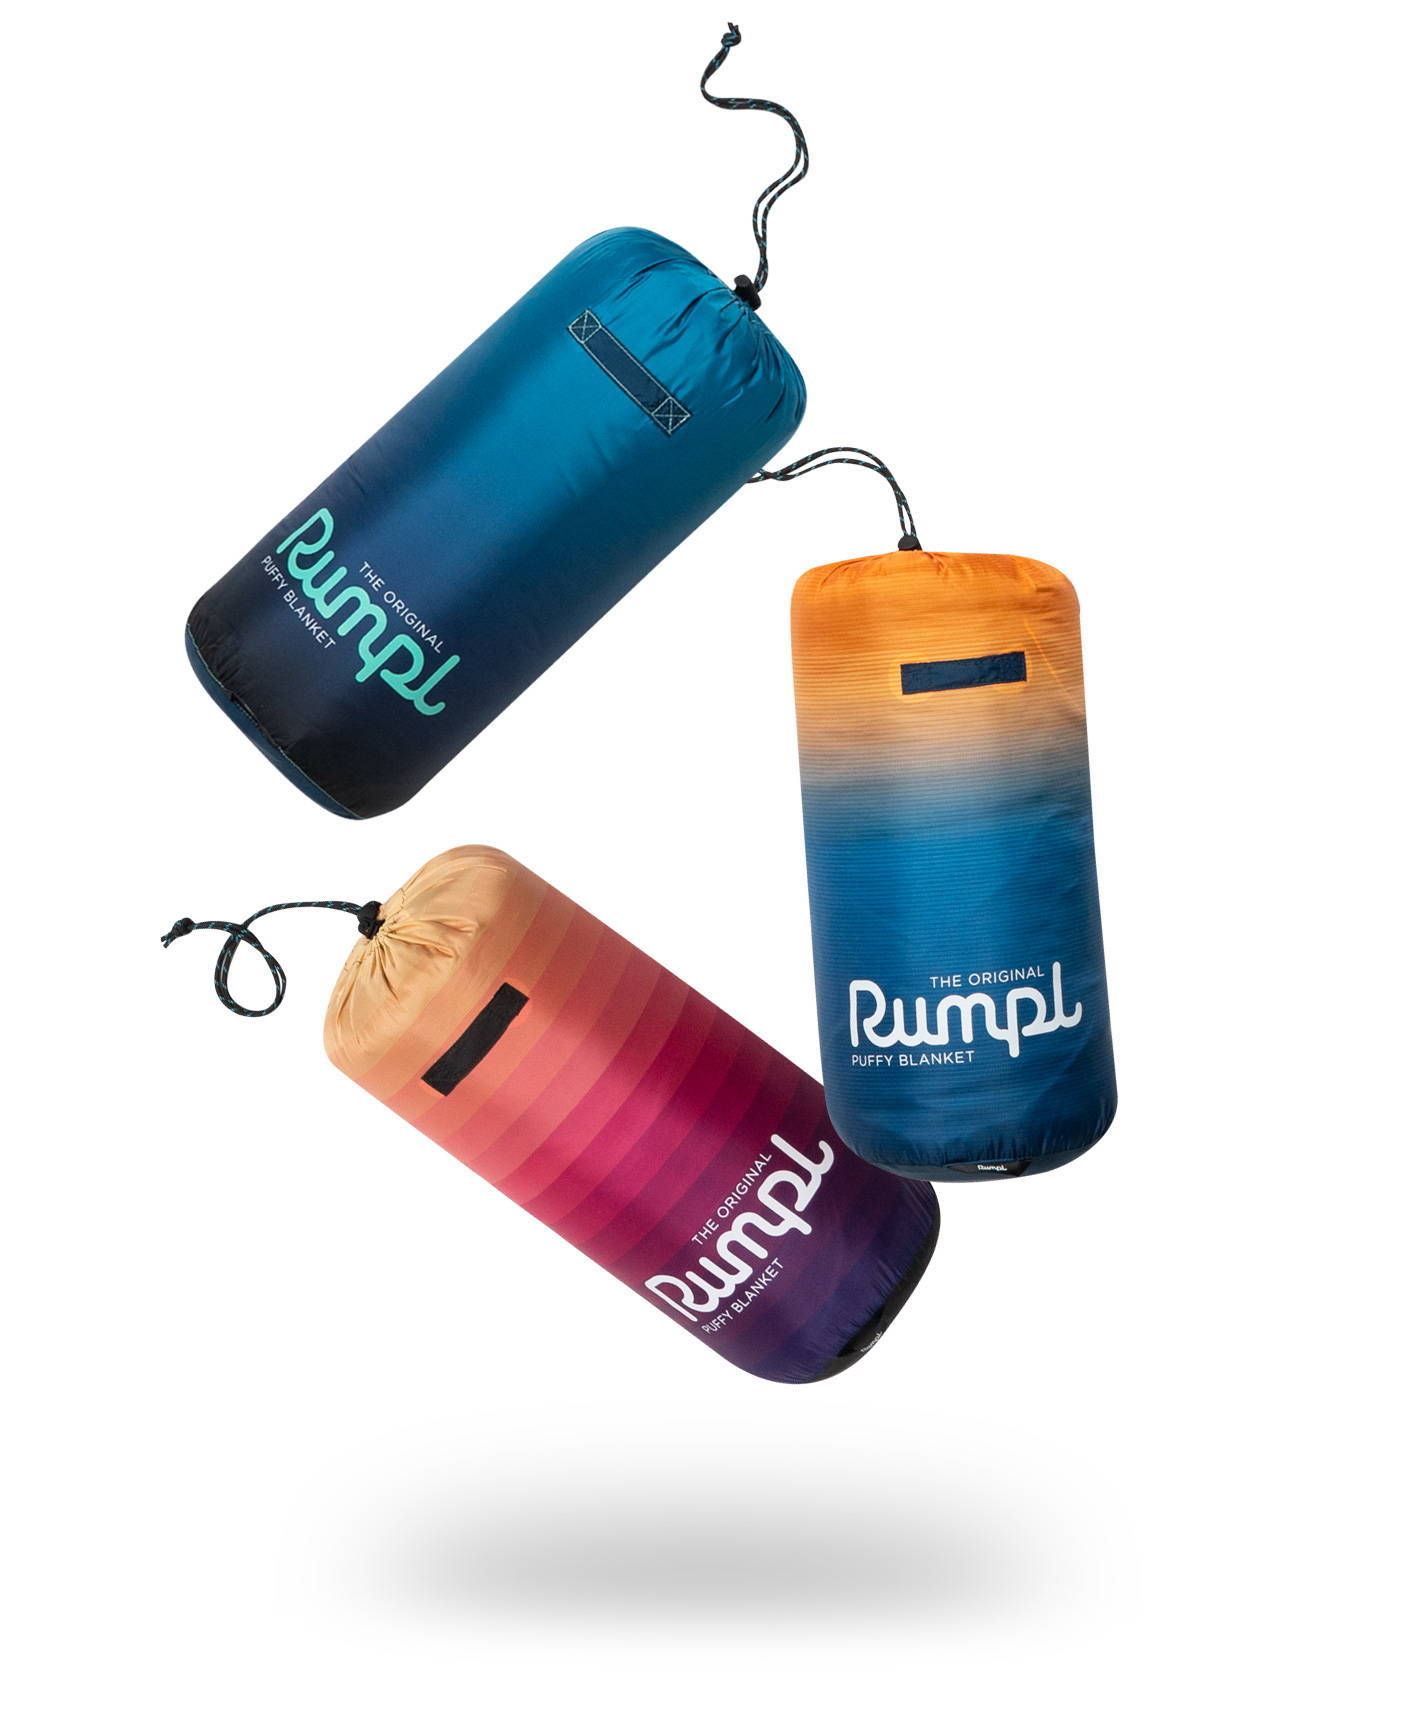 3 Rumpl Original Puffy Blankets floating in front of white background